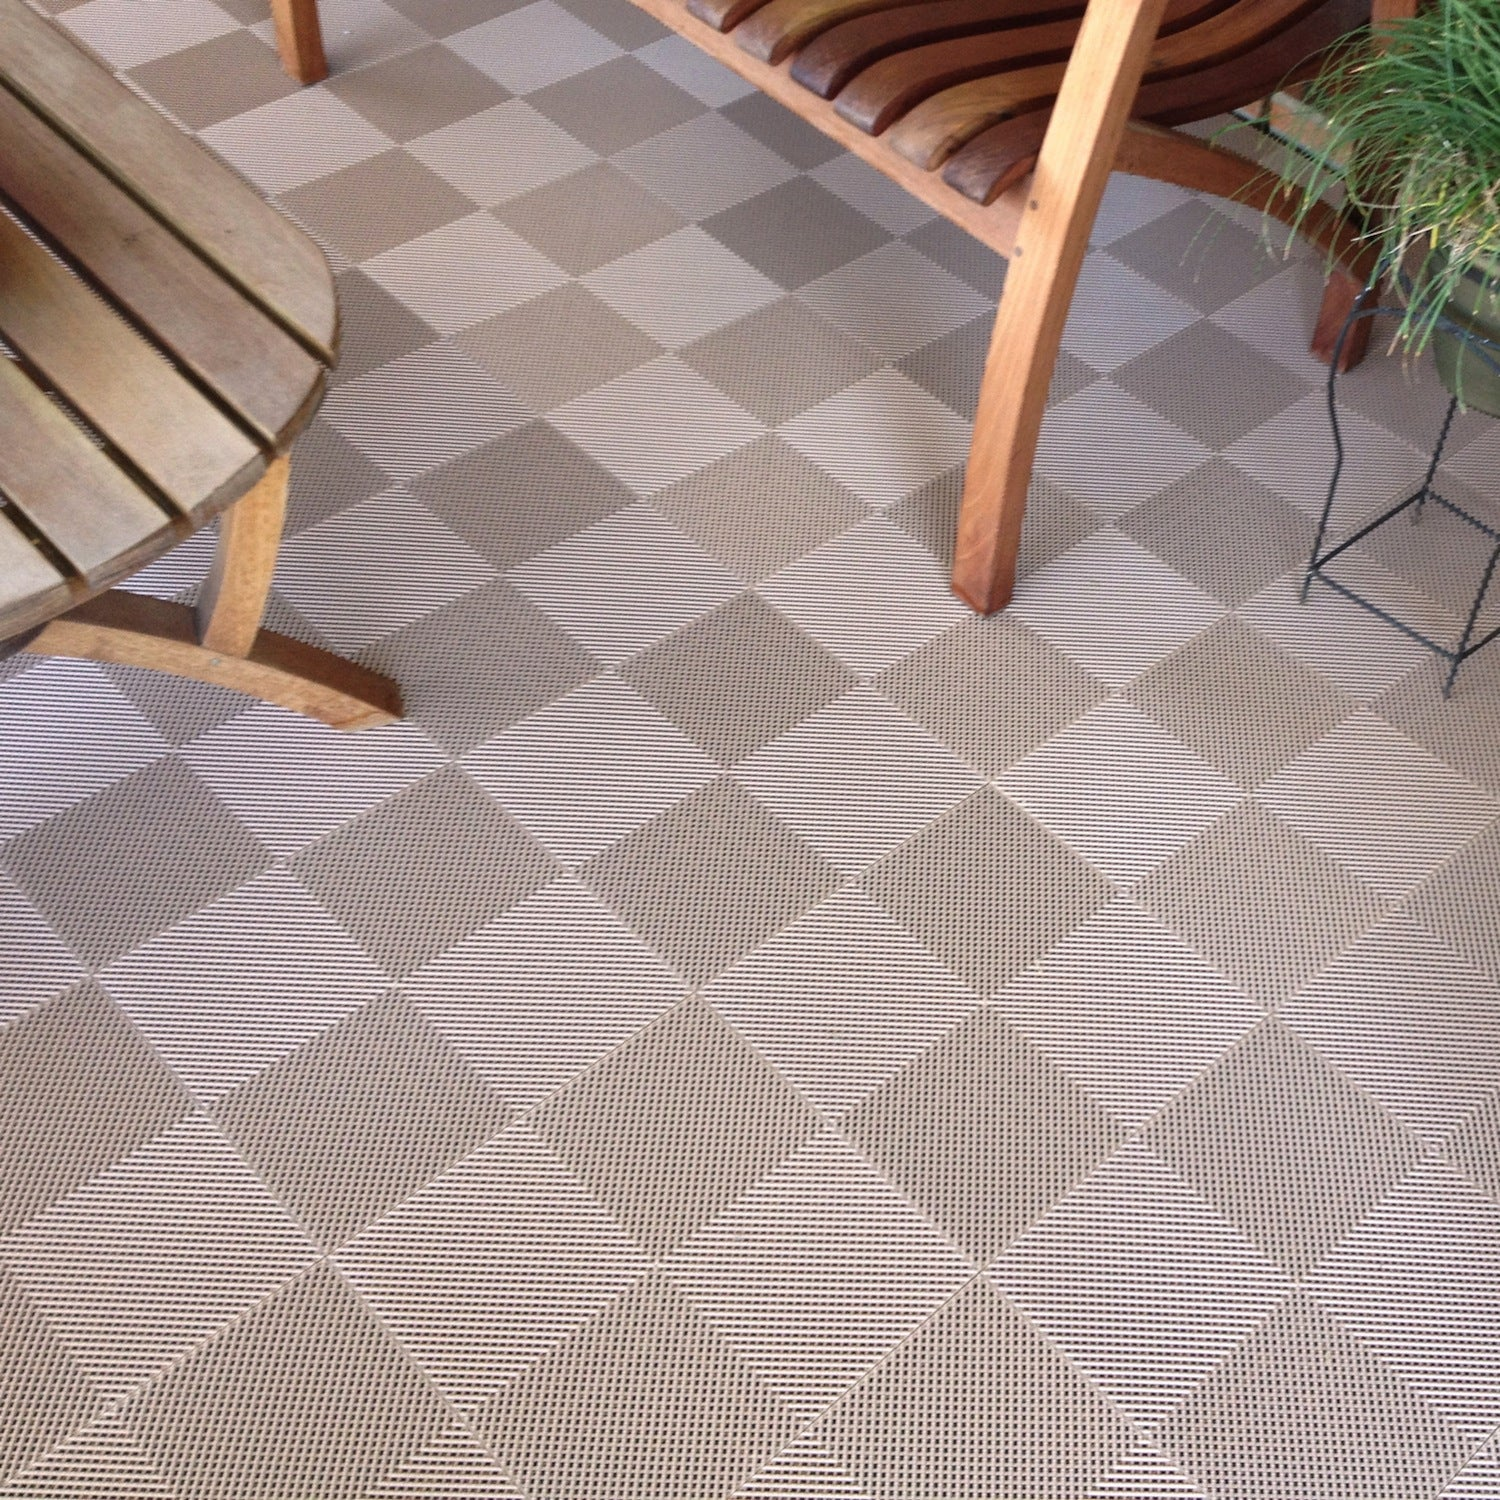 BlockTile Deck And Patio Flooring Interlocking Perforated Tiles (Pack Of  30)   Free Shipping Today   Overstock   14982460